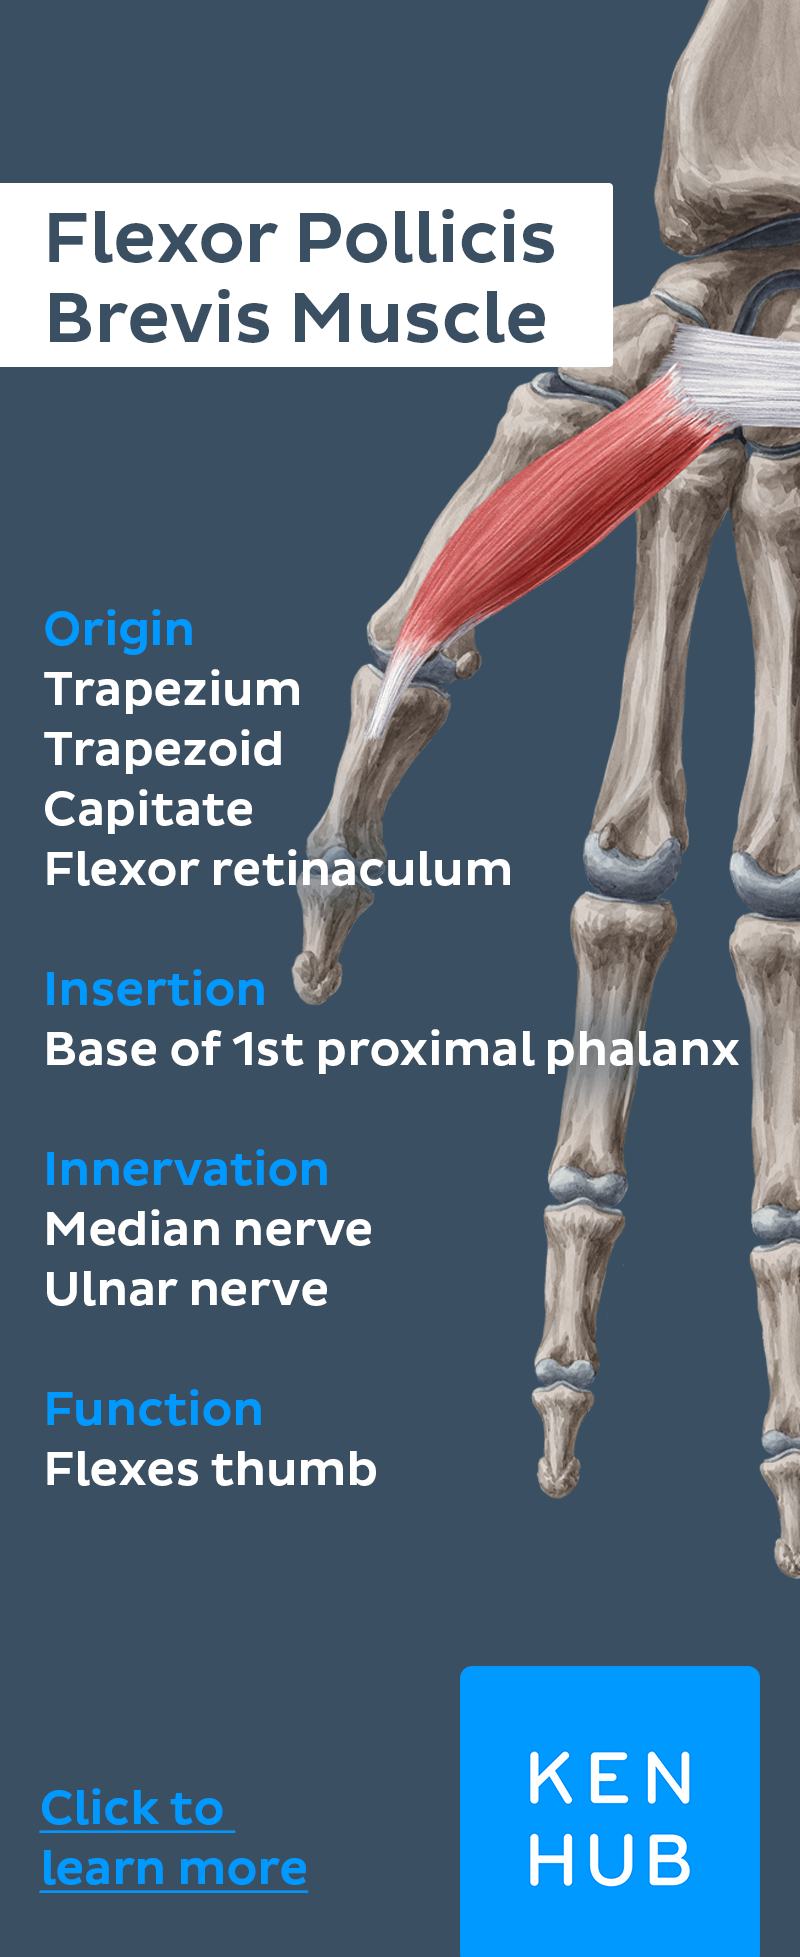 muscle facts about the flexor pollicis brevis muscle. Re-pin and ...